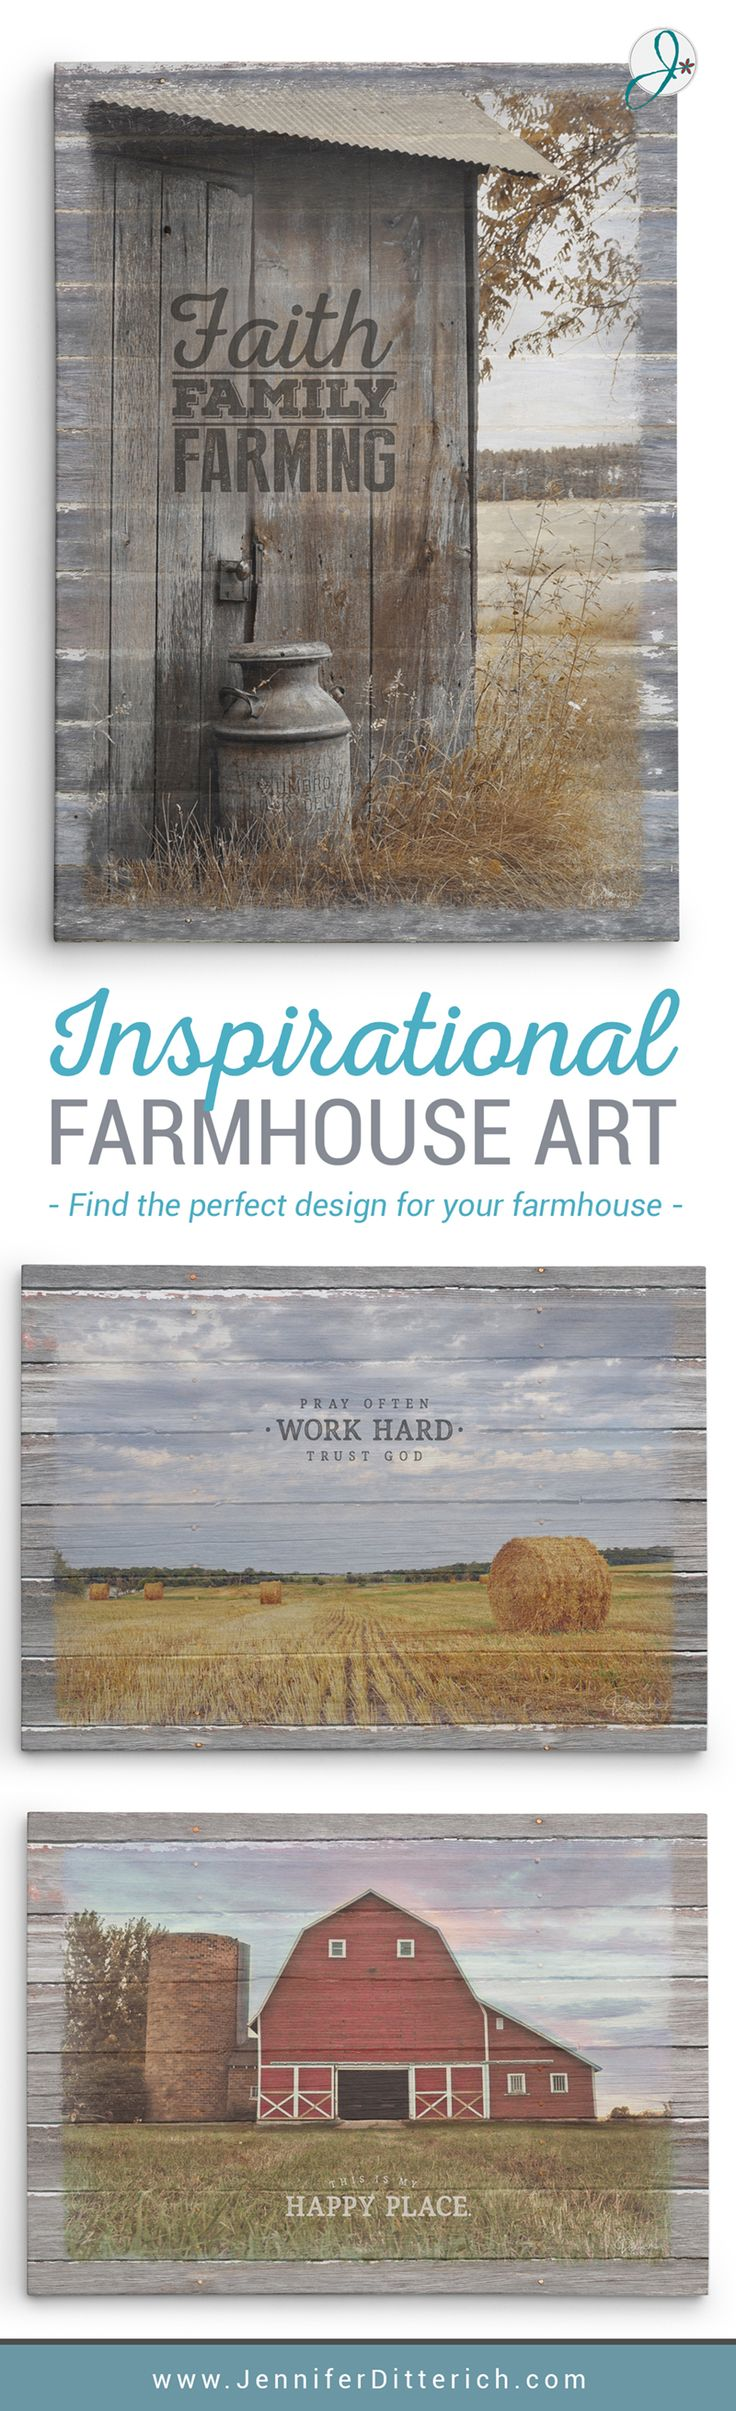 Modern farmhouse prints with traditional down-home values. Decorate your home with these beautiful, uplifting canvas prints, designed to inspire and uplift your family.